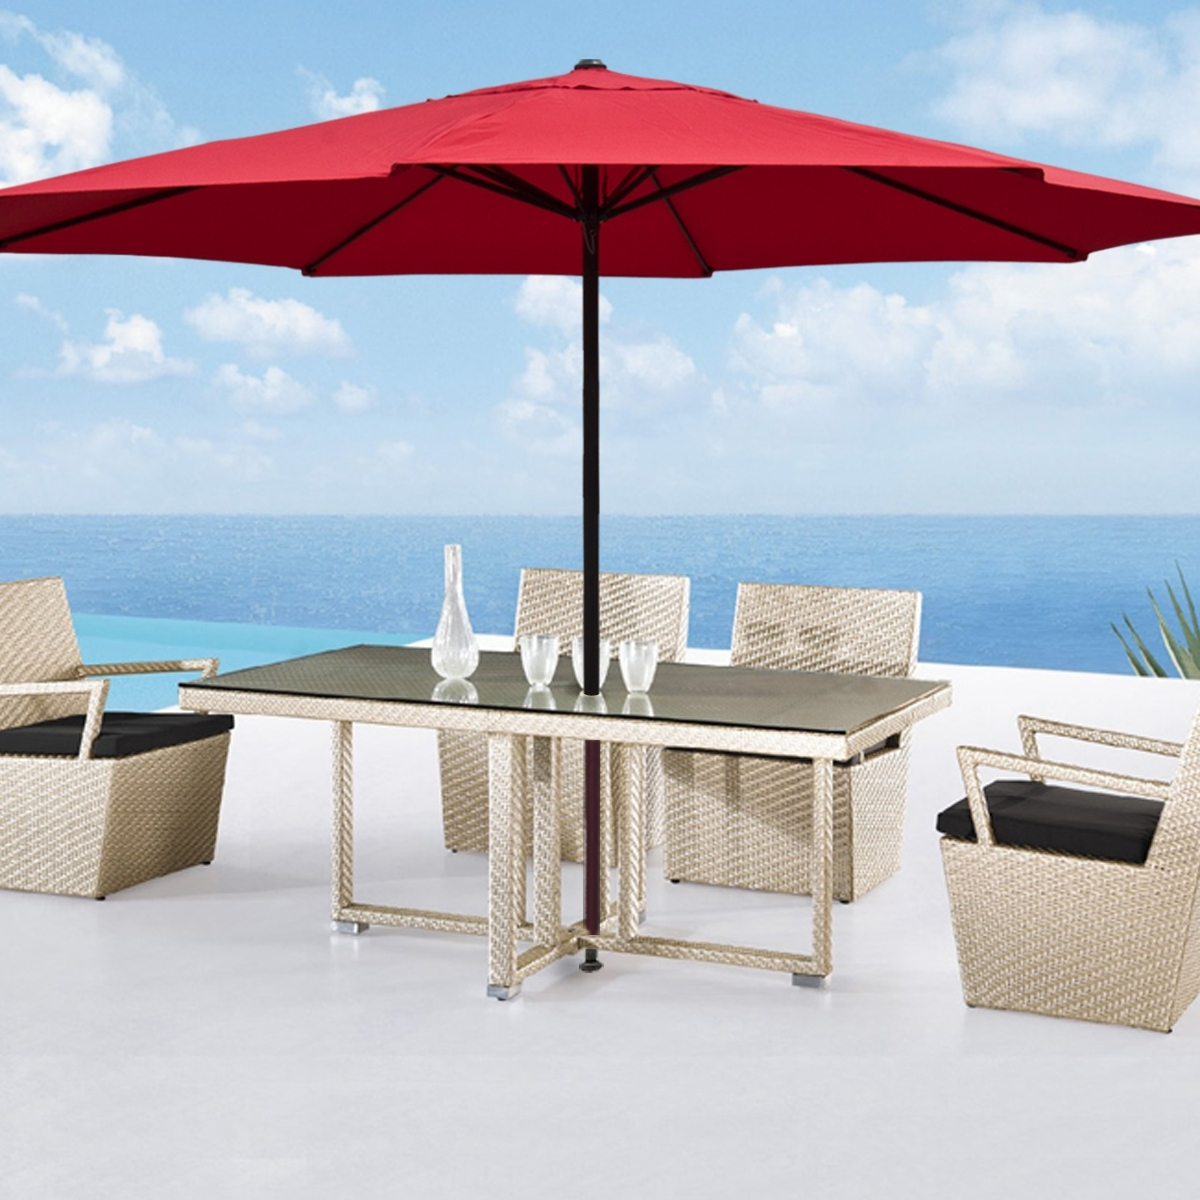 Large Patio Umbrellas With Regard To Preferred Red Large Patio Umbrellas — Wilson Home Ideas : Stylish Large Patio (View 9 of 20)